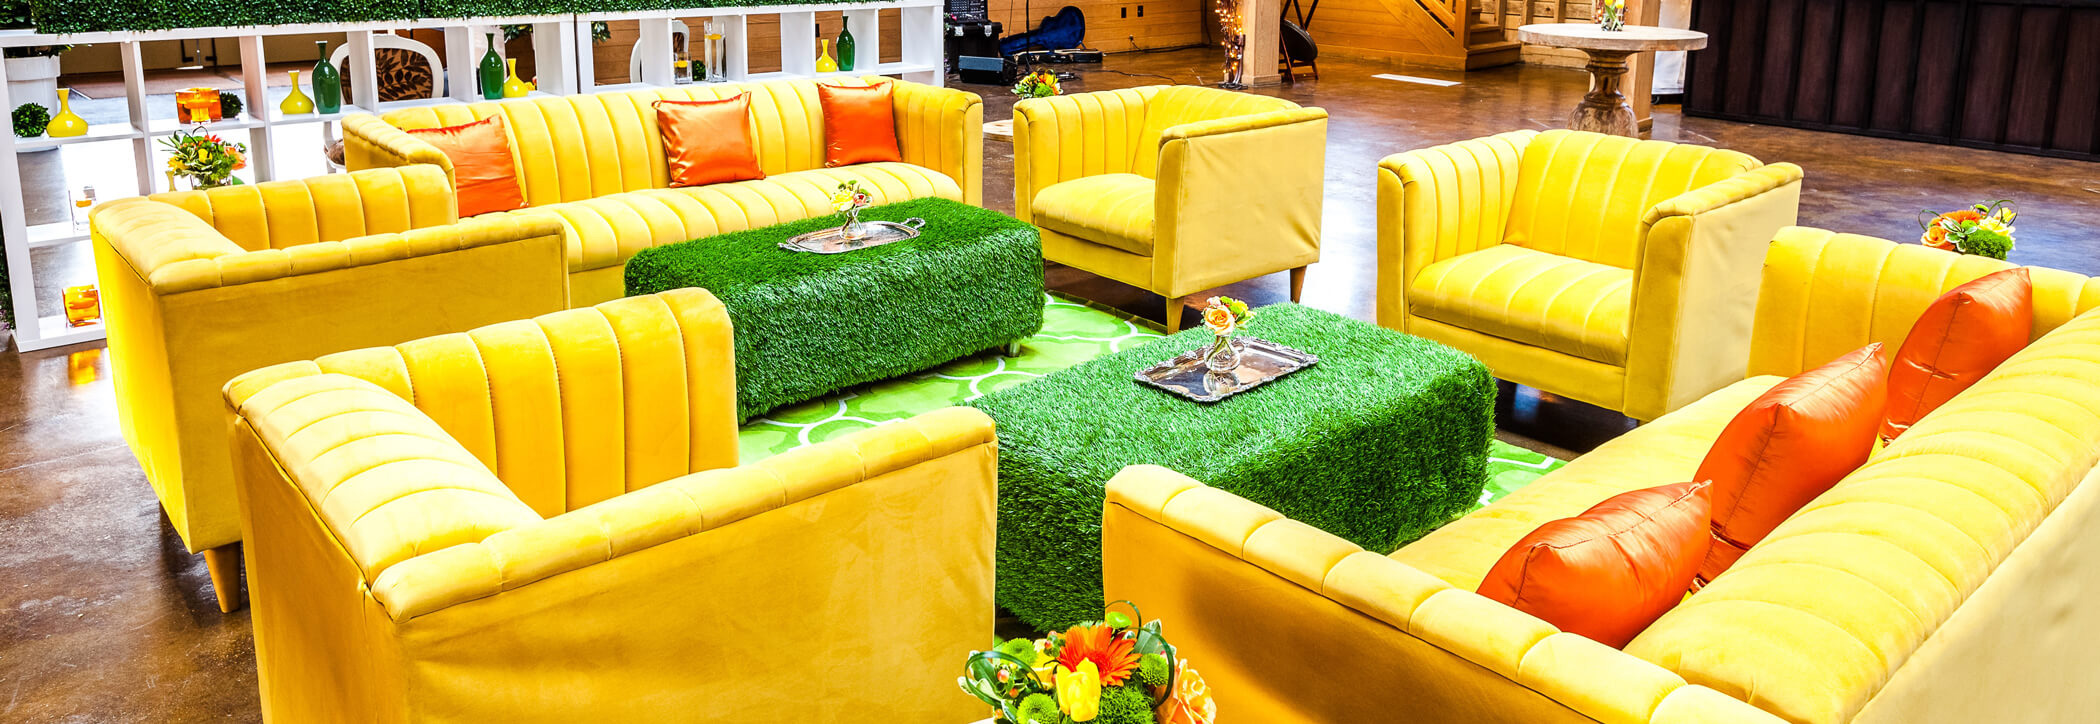 AFR® Event Furnishings Offers Exquisite Furniture And Accessory Rentals For  Special Events Including Red Carpet Events, Weddings, Corporate Meetings,  ...